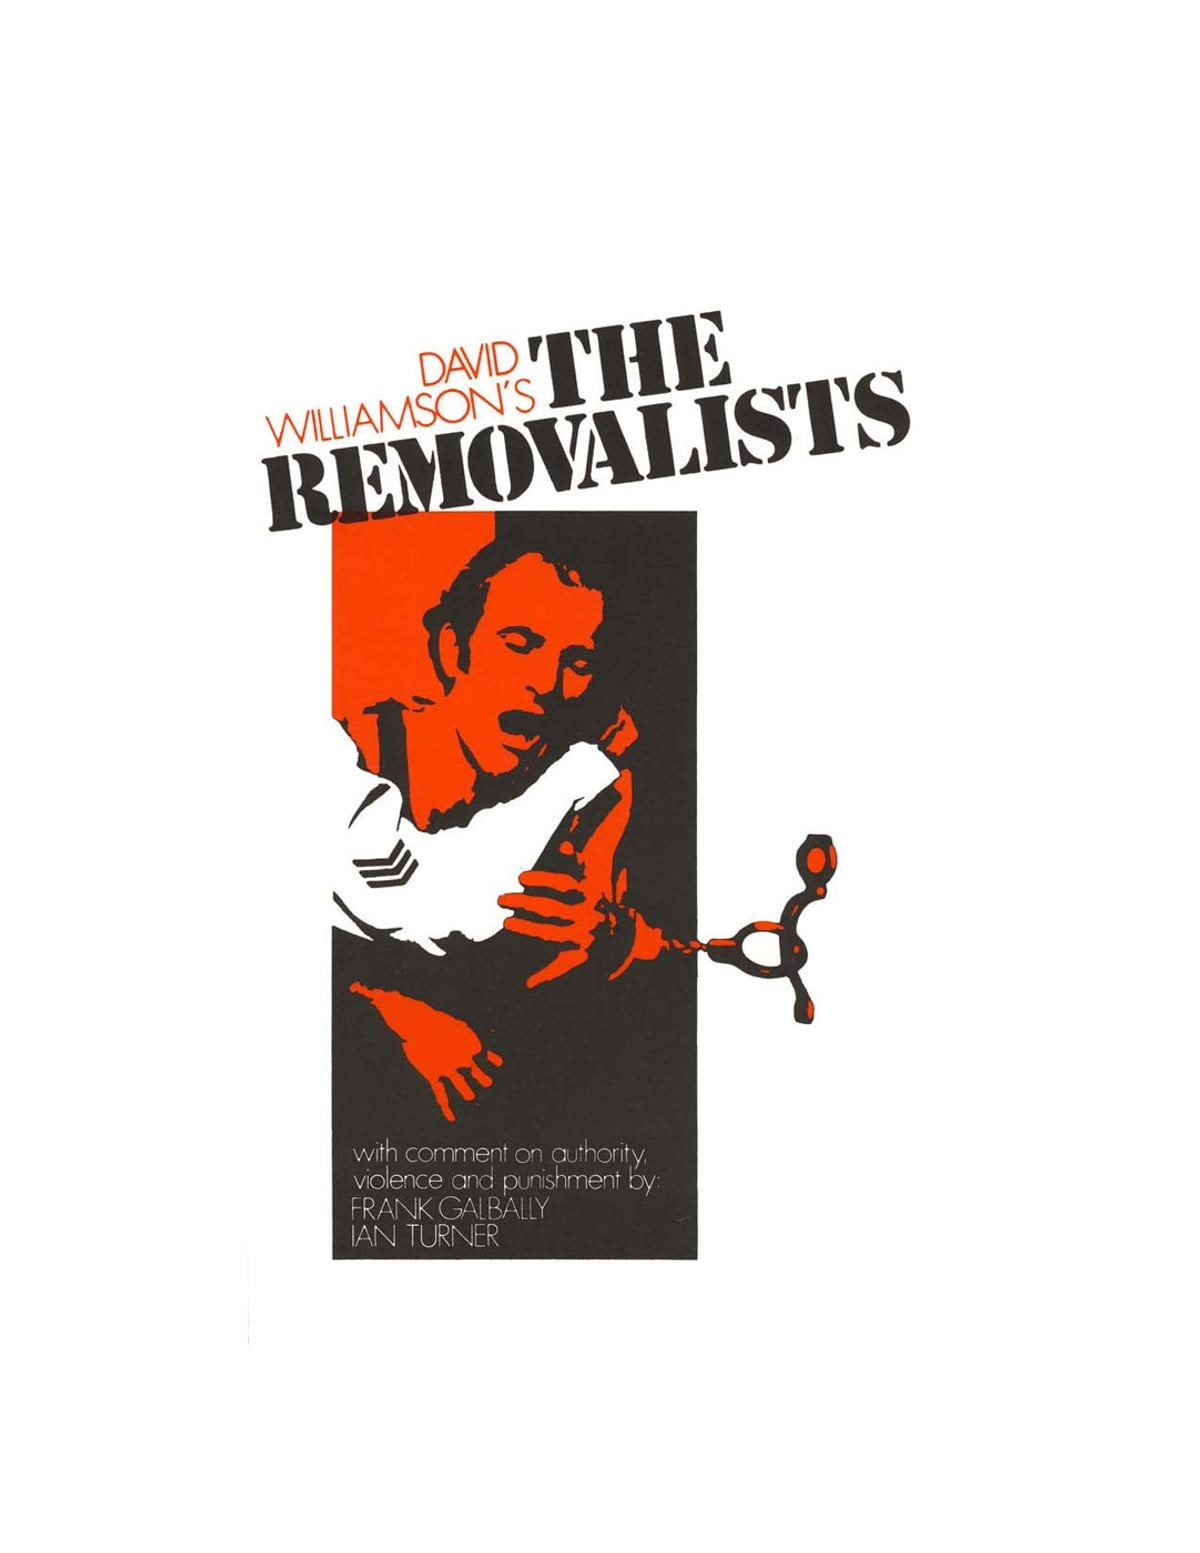 The removalists ebook by david williamson 9781921428630 the removalists ebook by david williamson 9781921428630 rakuten kobo fandeluxe PDF